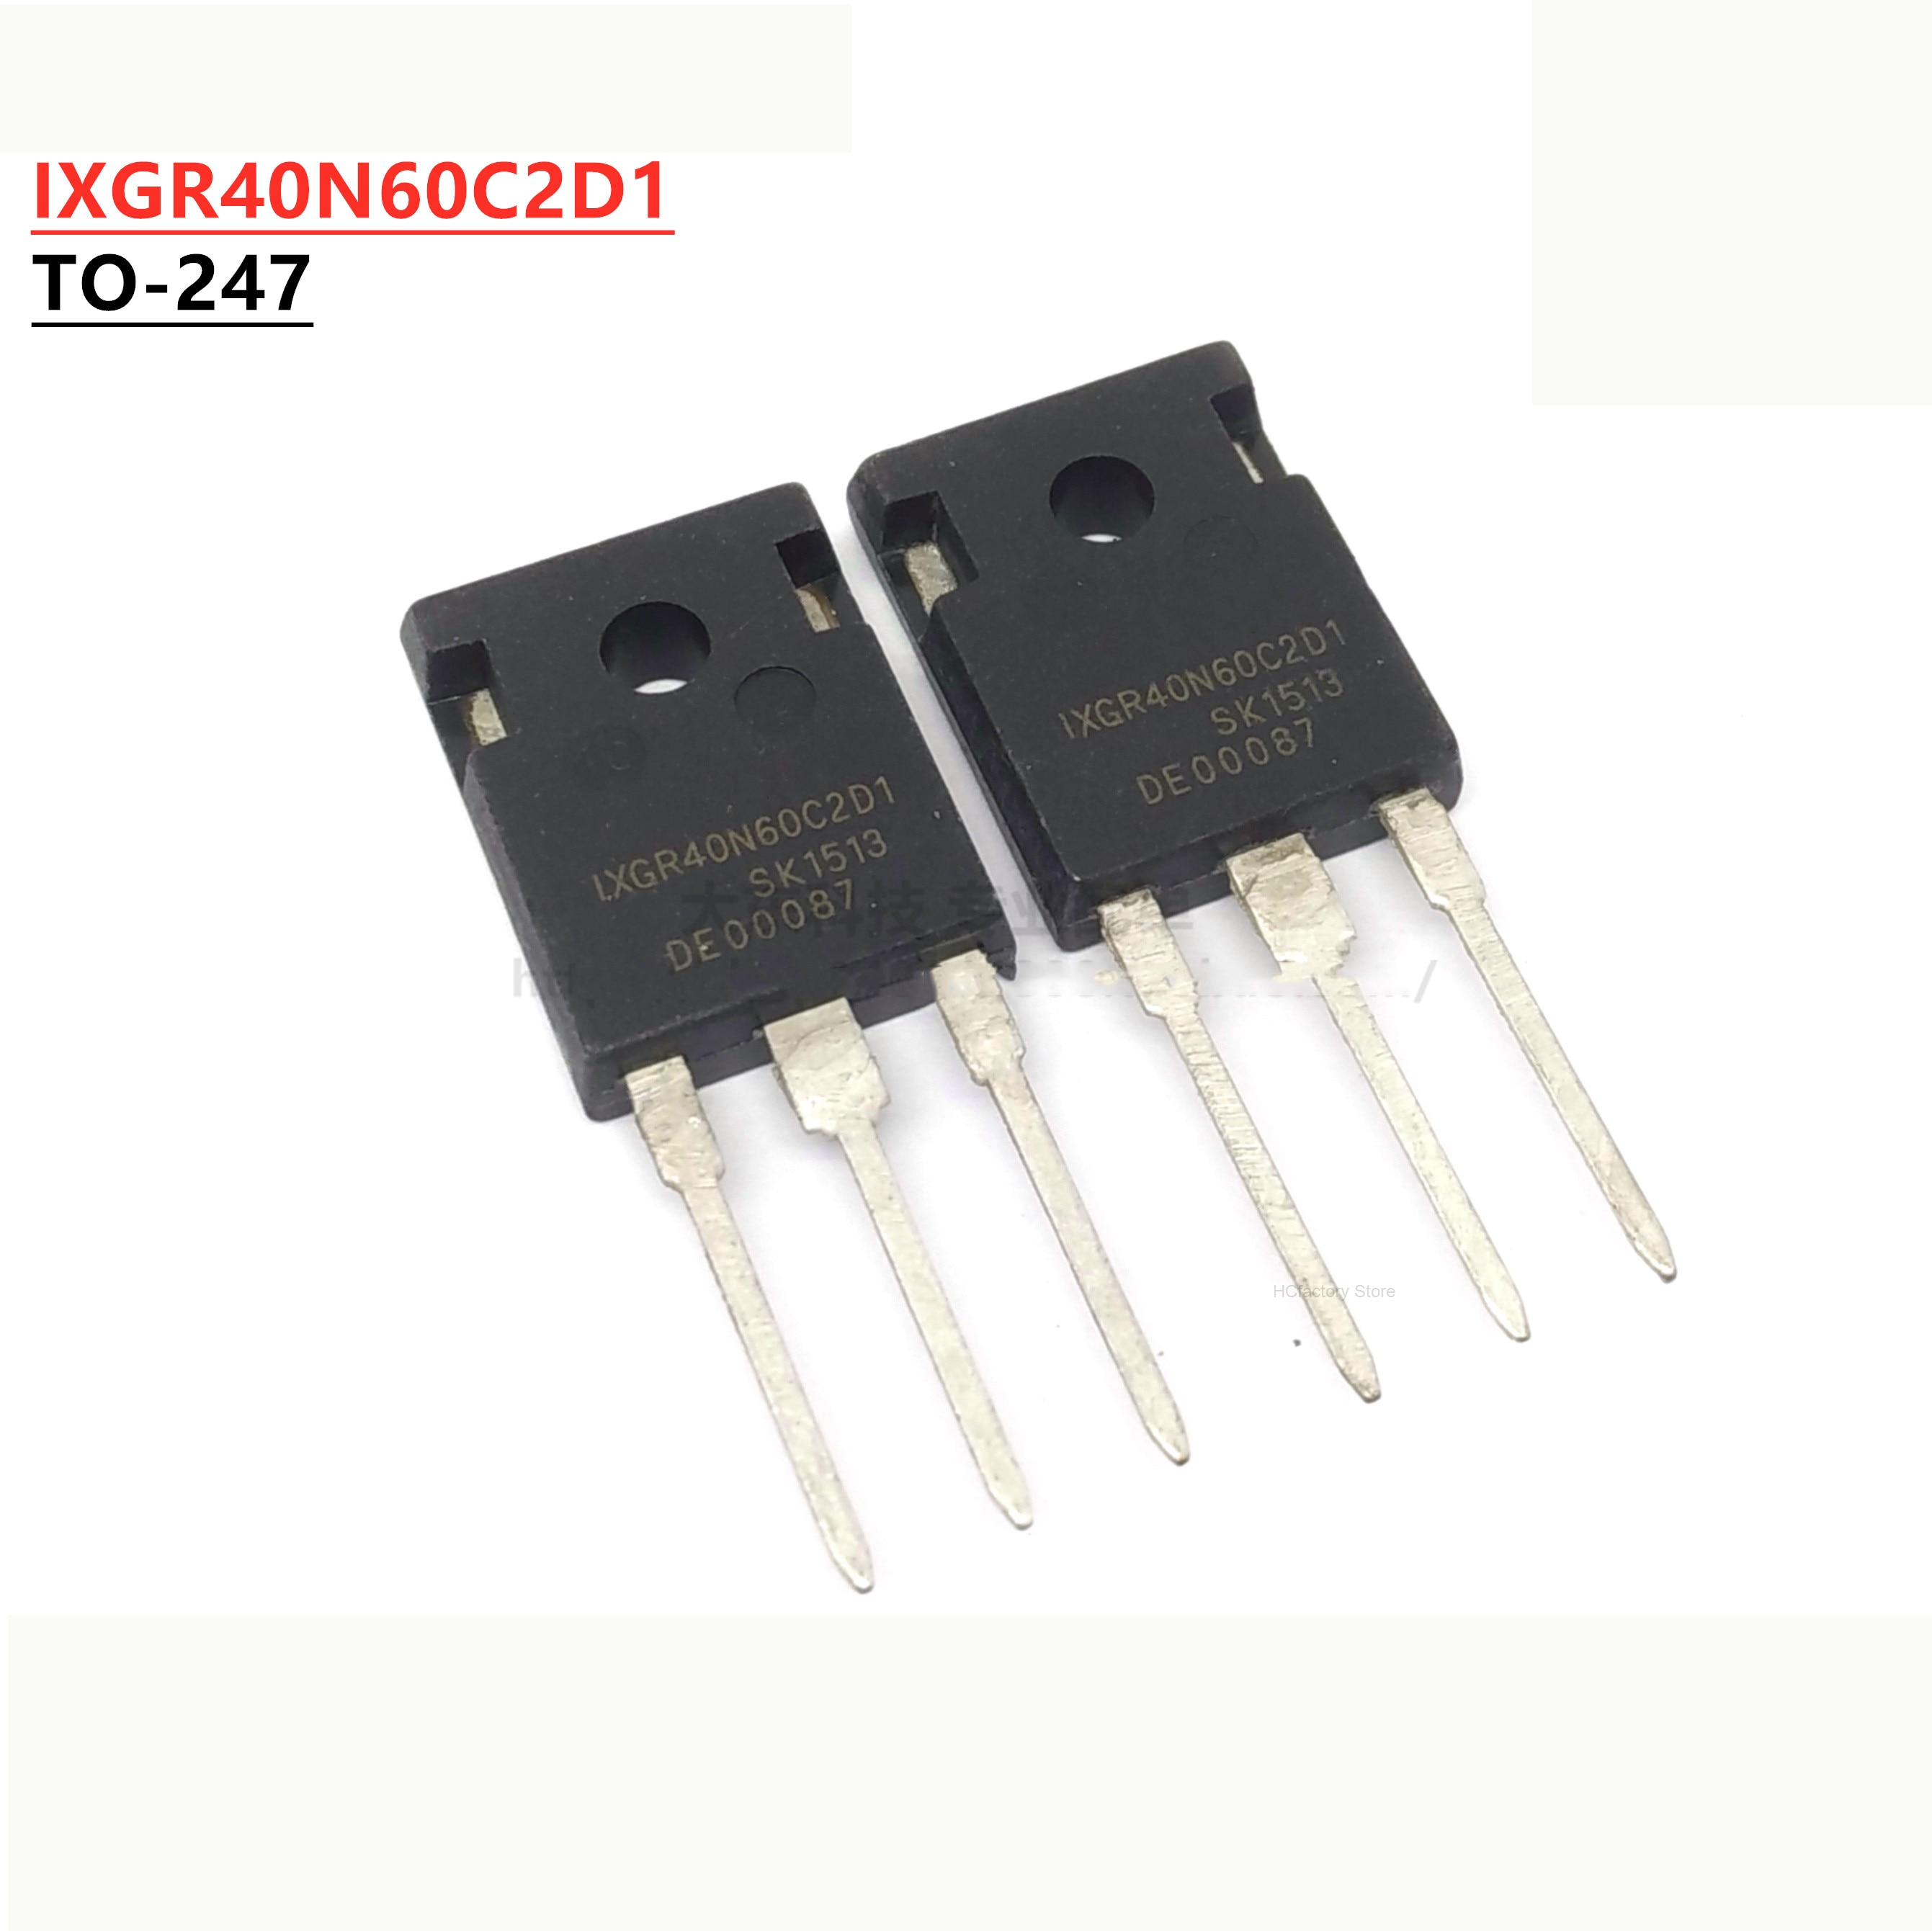 Фото - NEW Original 2pcs/lot IXGR40N60C2D1 TO-247 40N60C2D1 TO247 IXGR40N60 TO-3P 40N60 cischy Wholesale one-stop distribution list mbr40200pt to 247